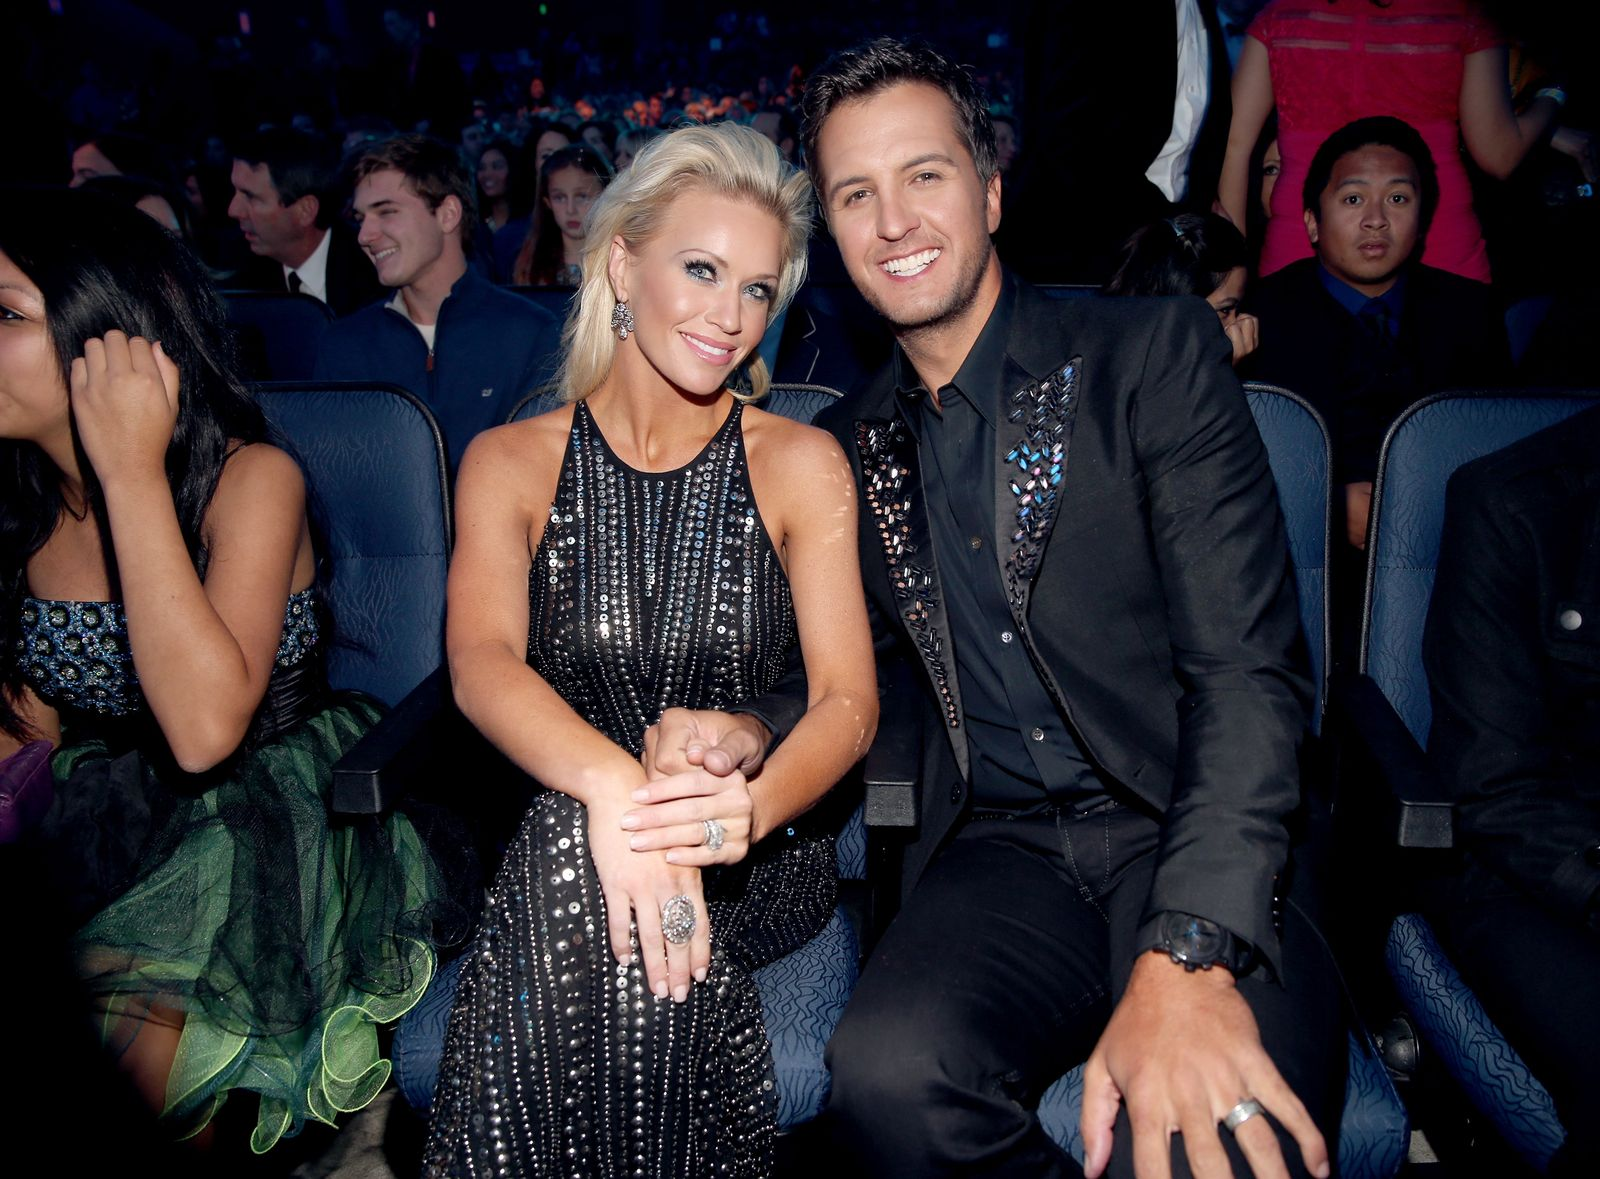 Luke Bryan and wife Caroline Bryan at the American Music Awards on November 24, 2013, in Los Angeles, California   Photo: Christopher Polk/AMA2013/Getty Images